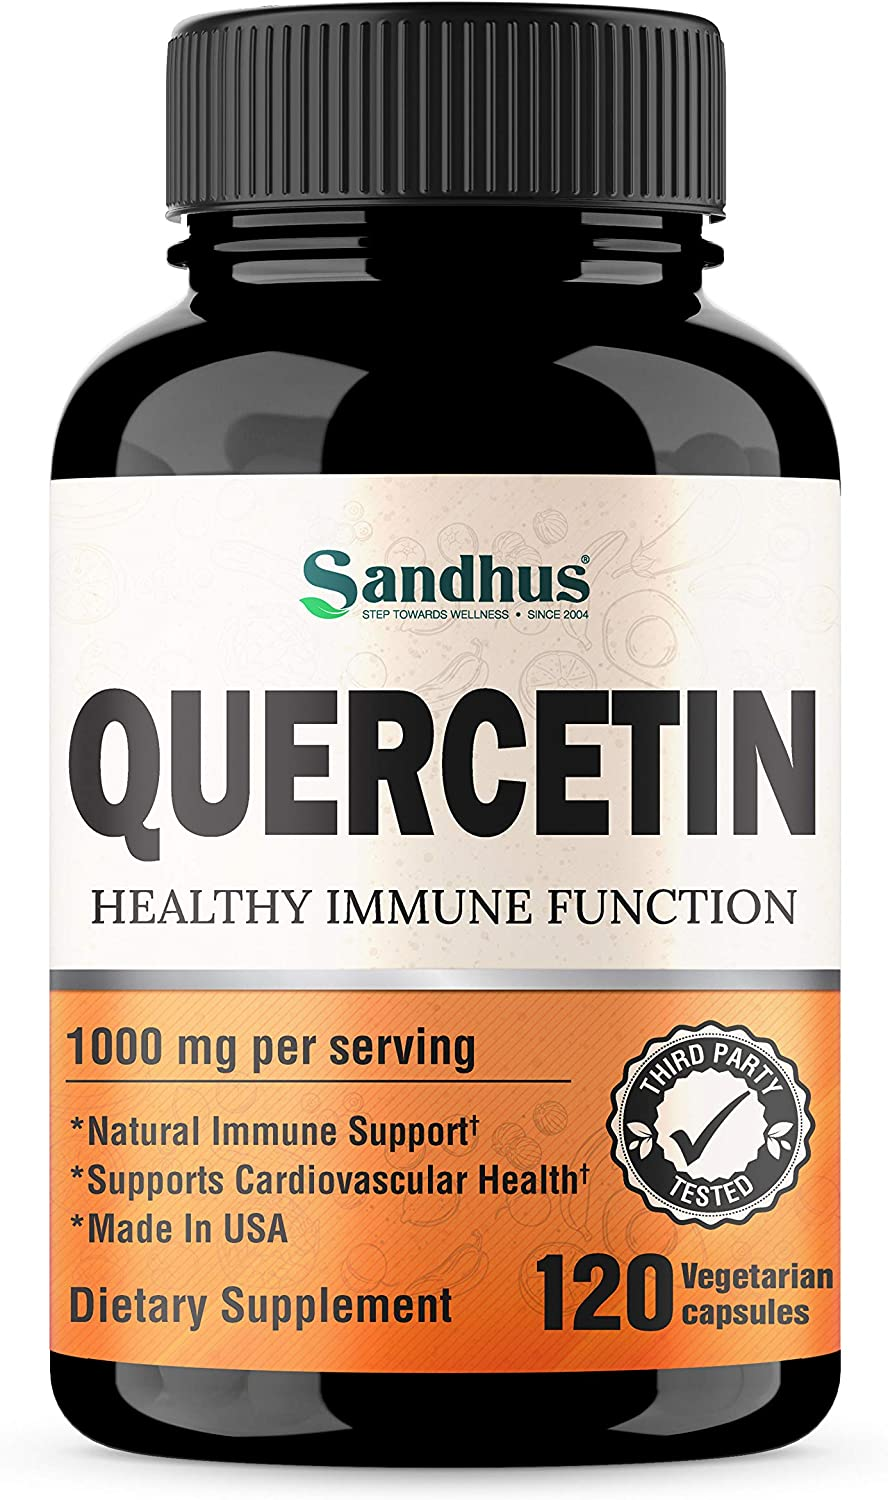 Quercetin 1000mg Per Serving Vegetarian Capsules Bioflavonoids Supports Immune Health & Cardiovascular Health, Respiratory Health, Seasonal Allergy Relief Made in USA 120 Count